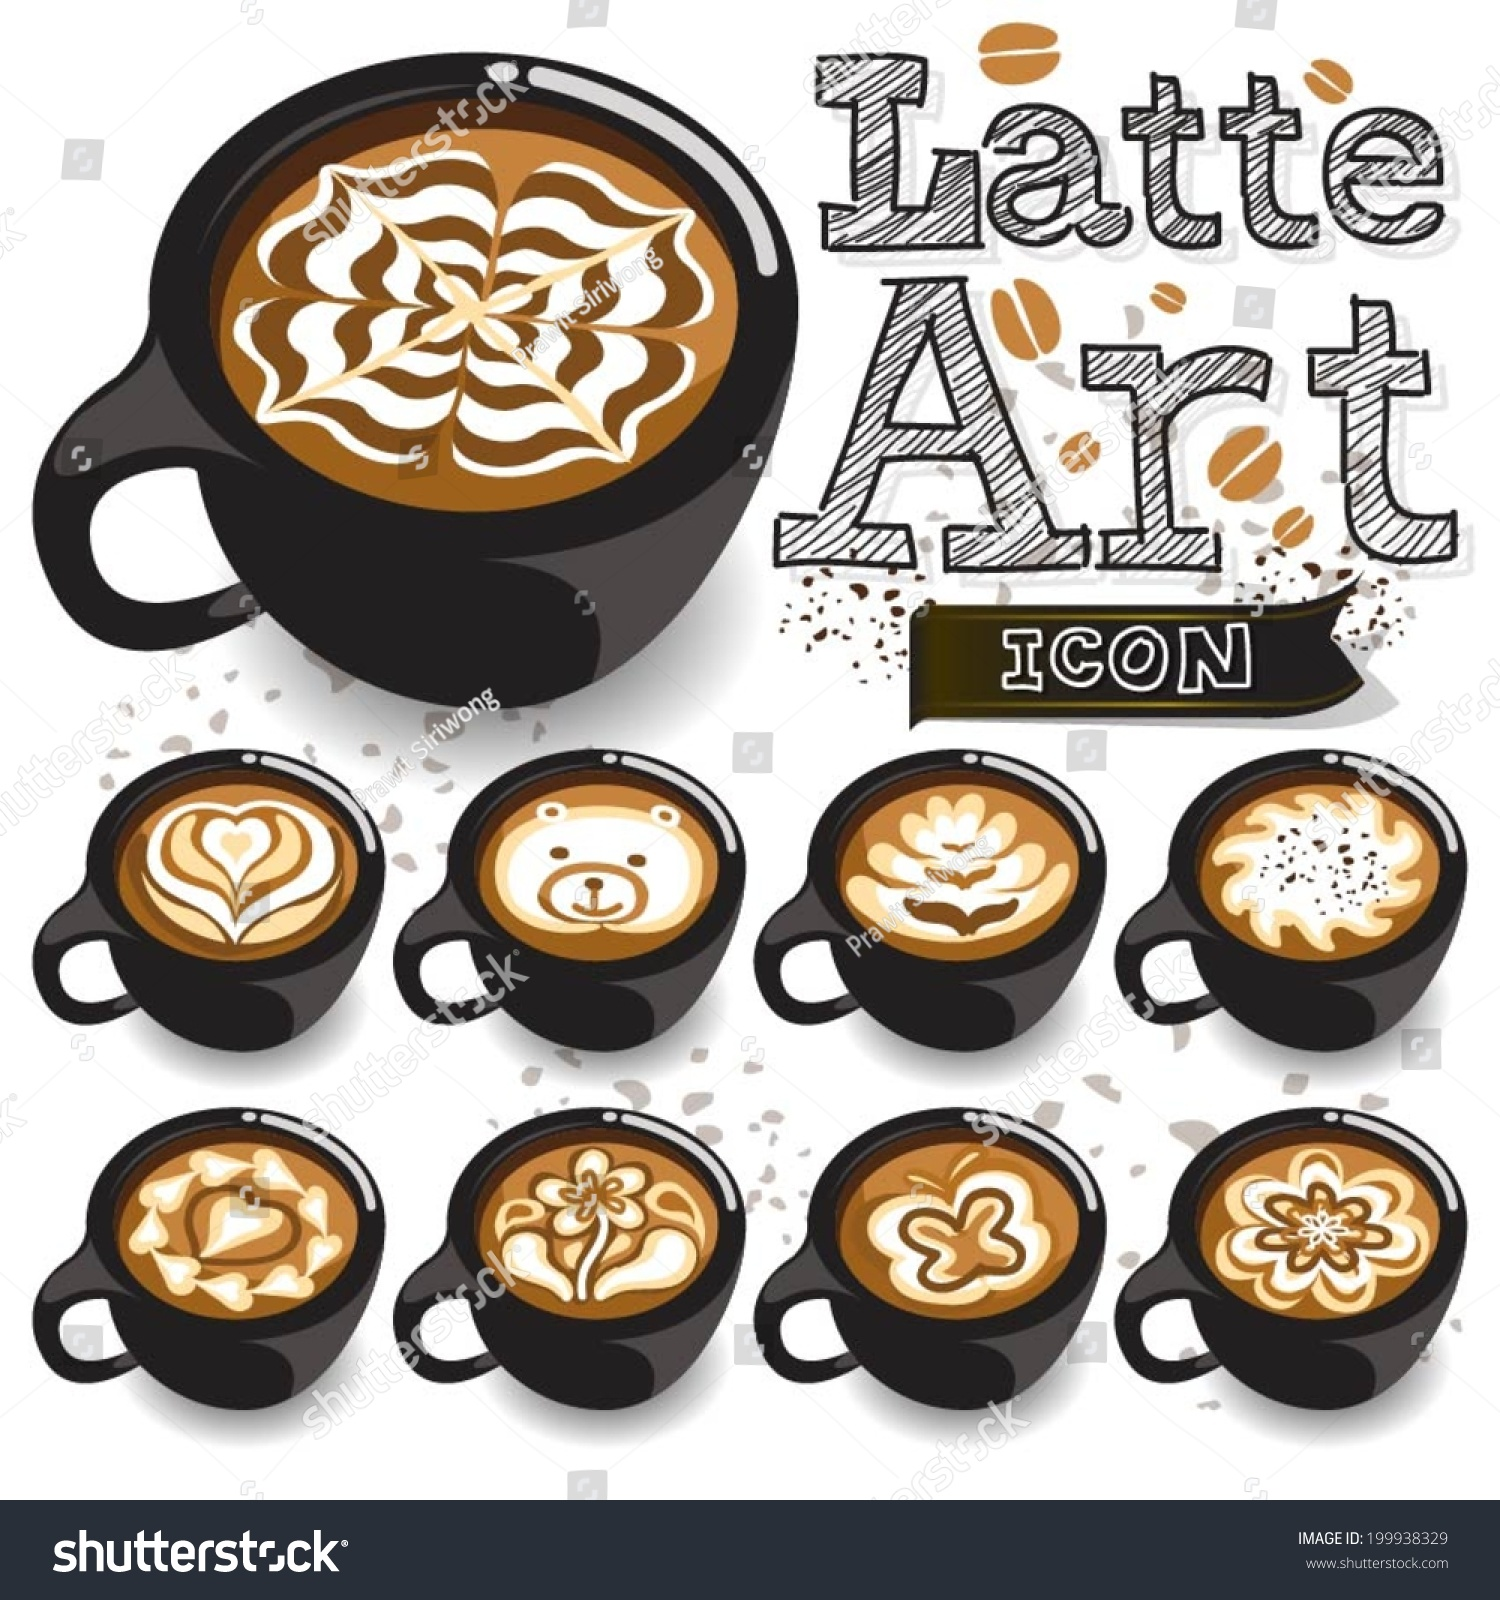 Coffee Latte Art Black Cup Stock Vector 199938329